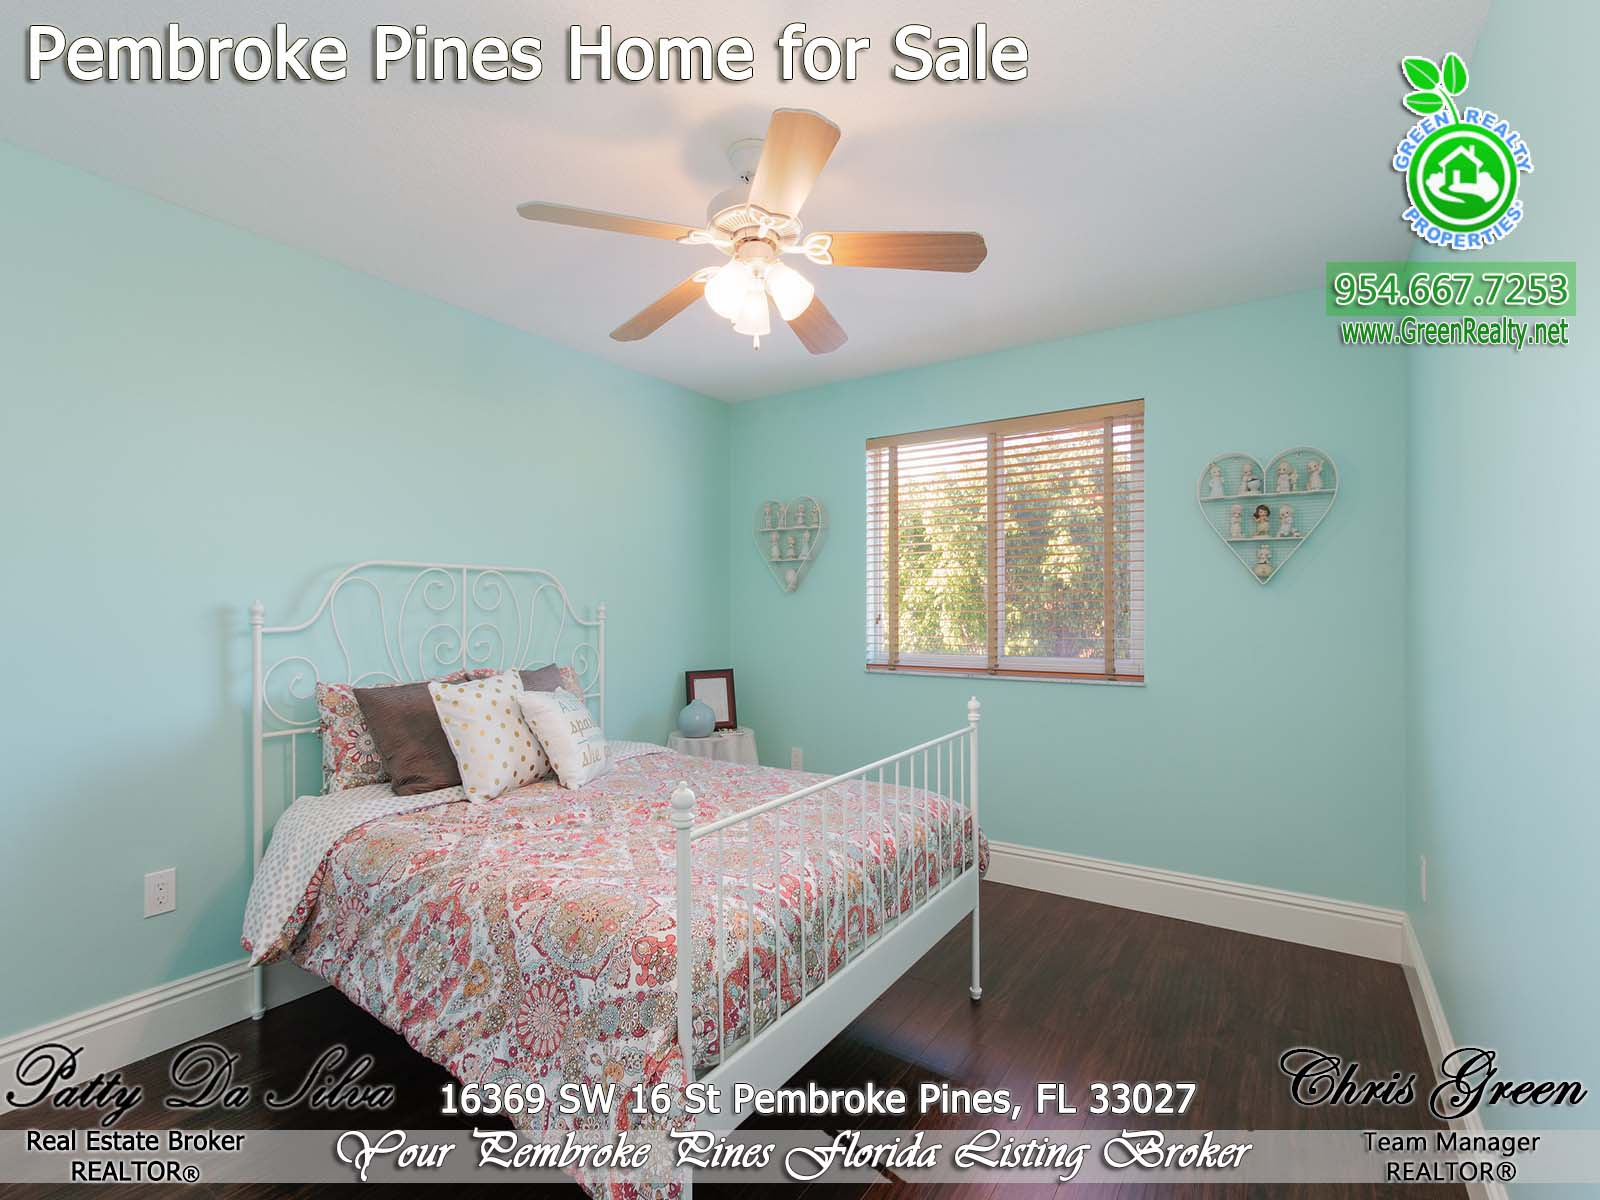 19 Pembroke Pines Realtor Broker Patty Da Silva south florida listing (19)